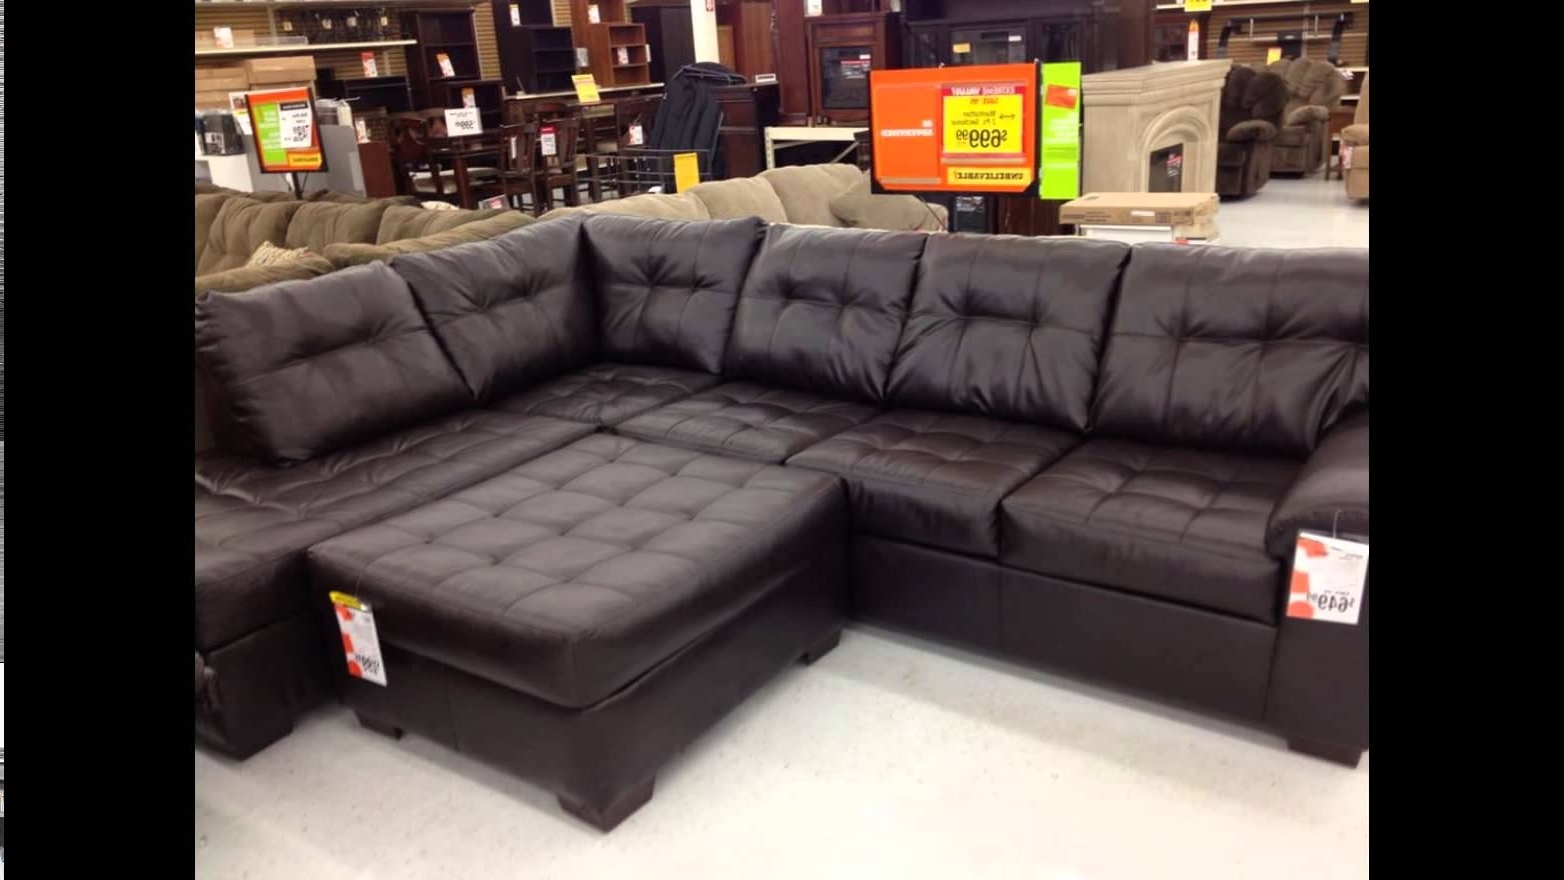 Displaying Gallery of Big Lots Sofas (View 11 of 11 Photos)